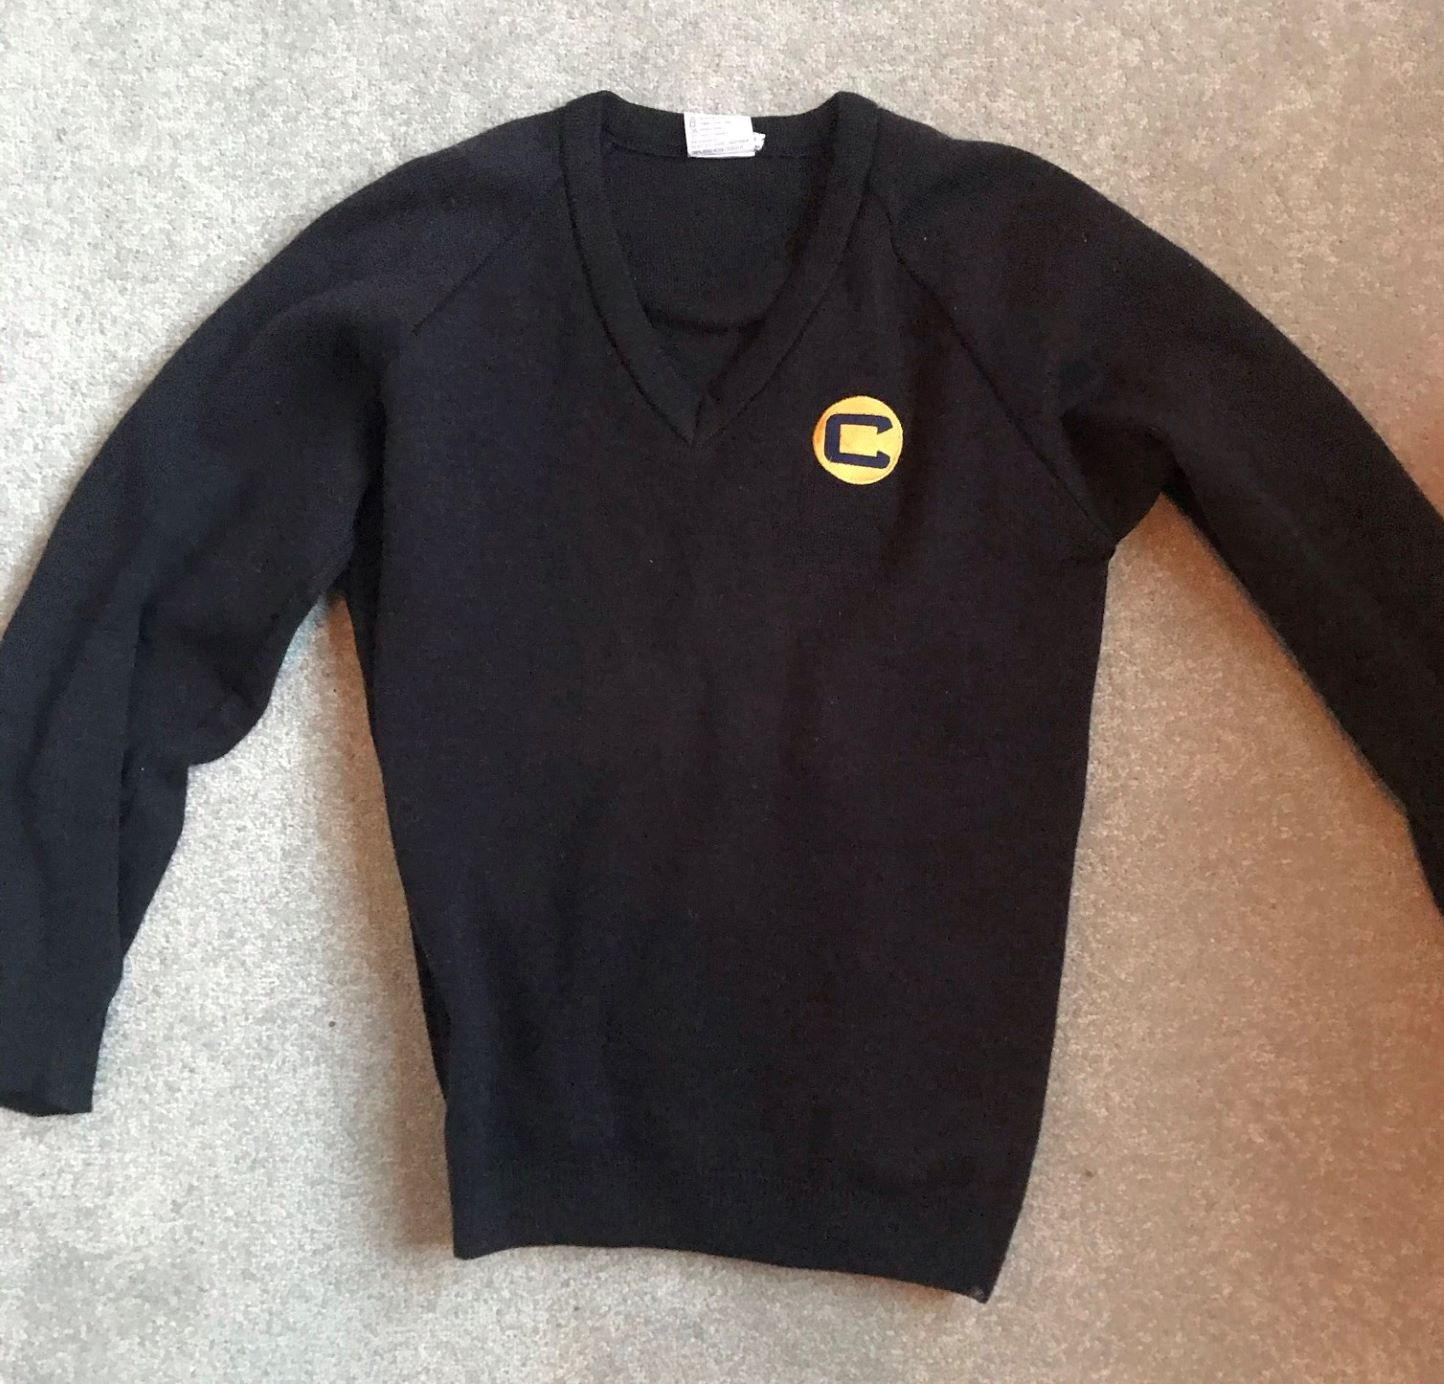 Charter North Jumper: Size 34